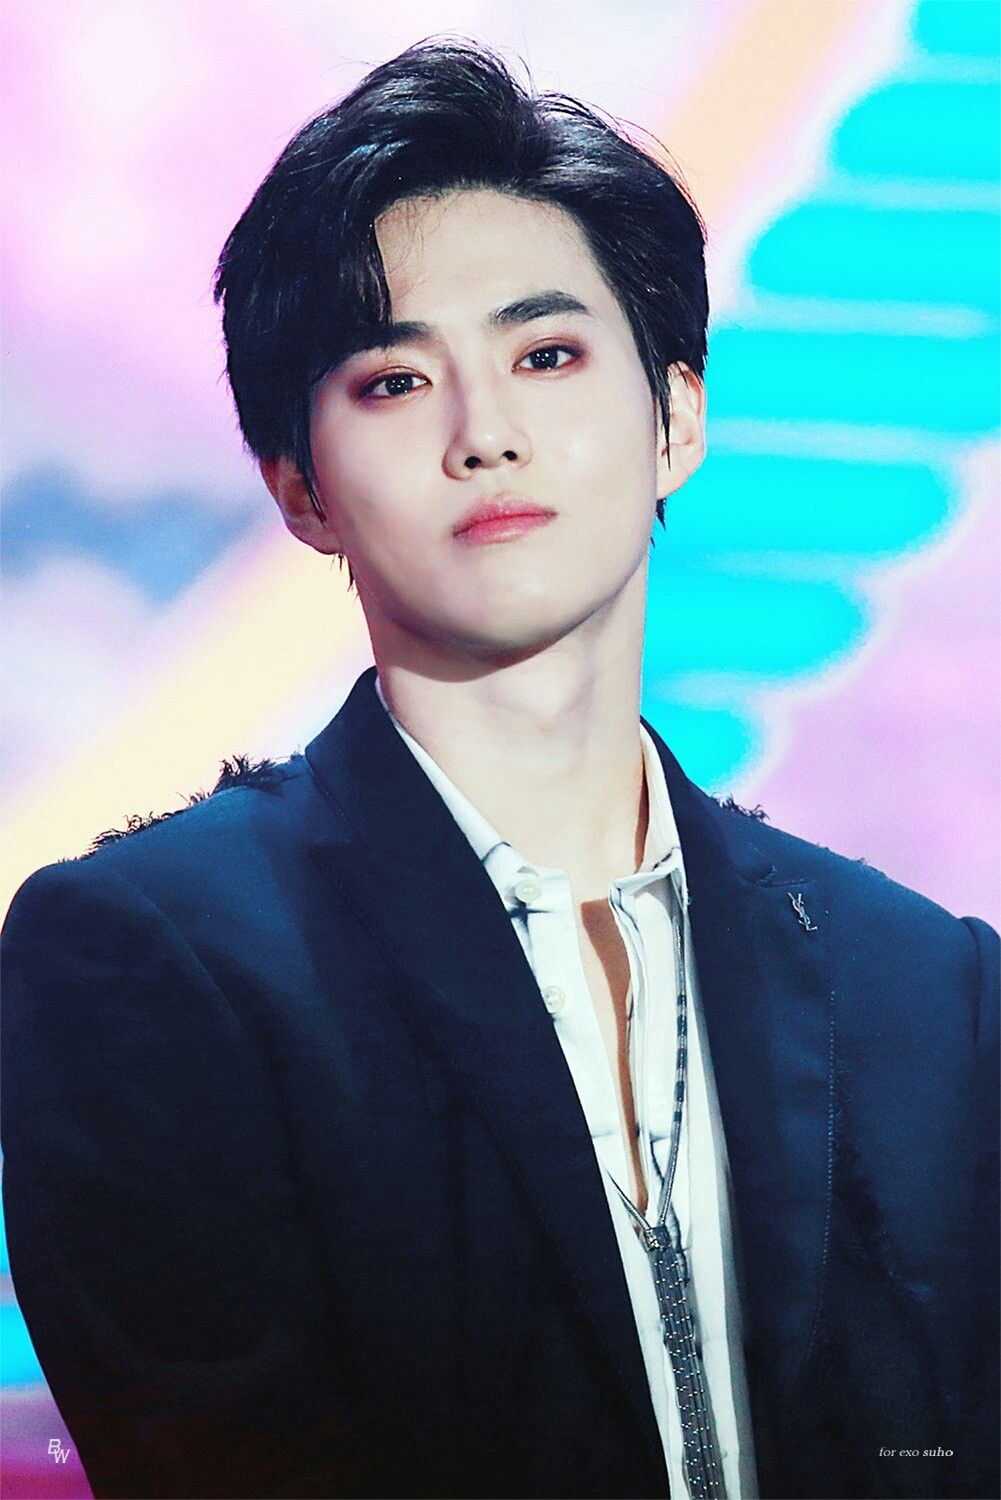 171202 suho mma 2017 suho exo in 2018 pinterest